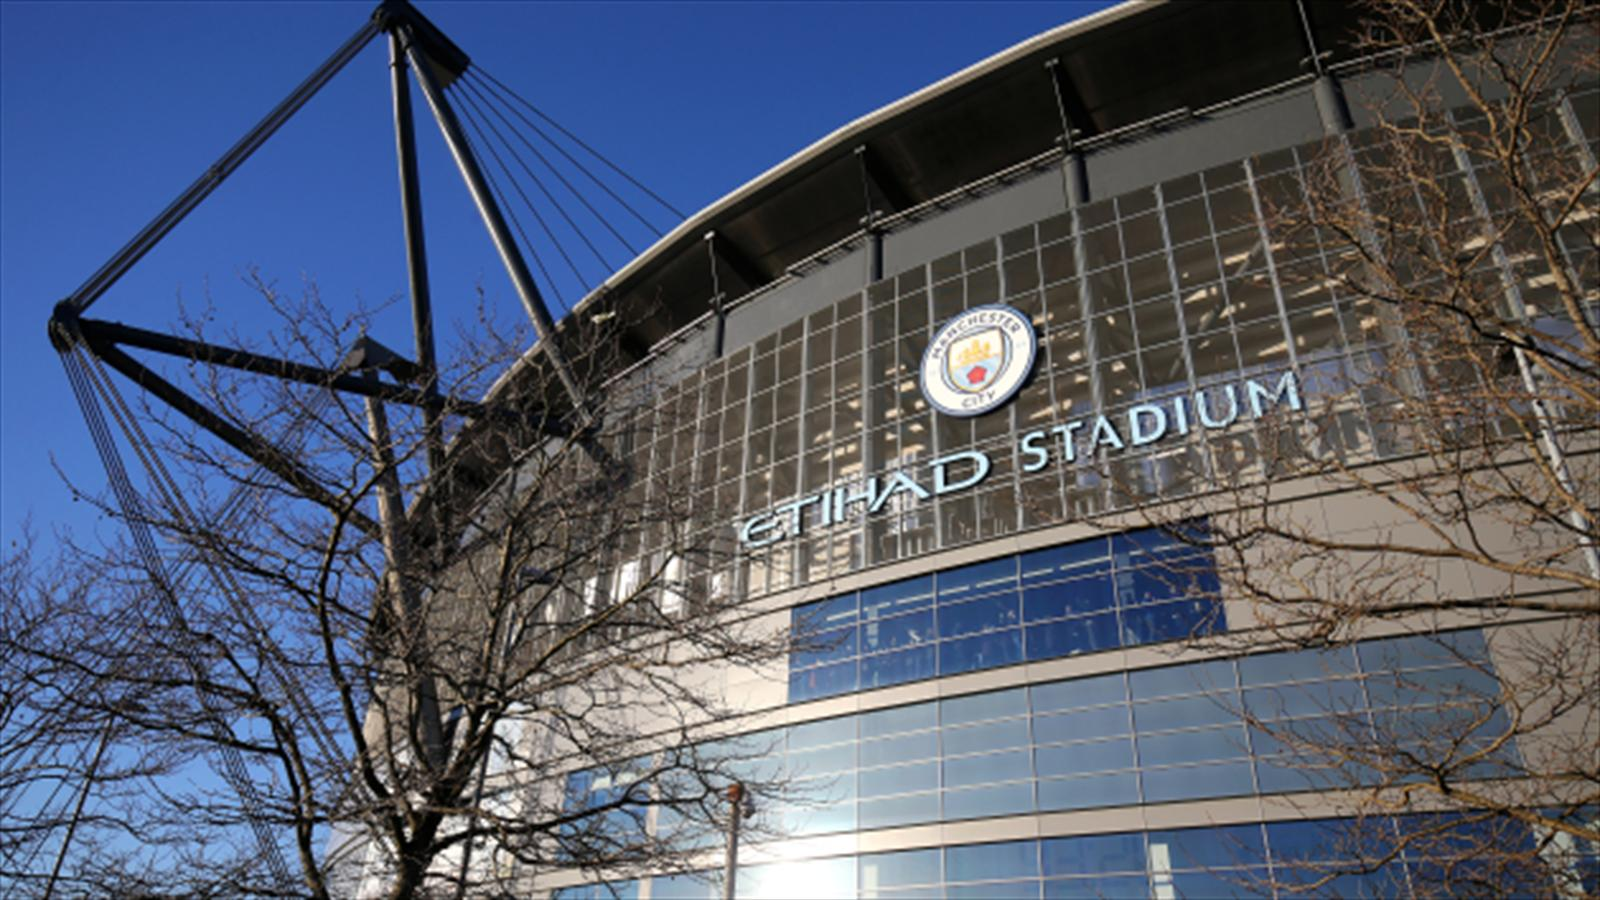 La Liga urge UEFA to investigate Manchester City over financial fair play